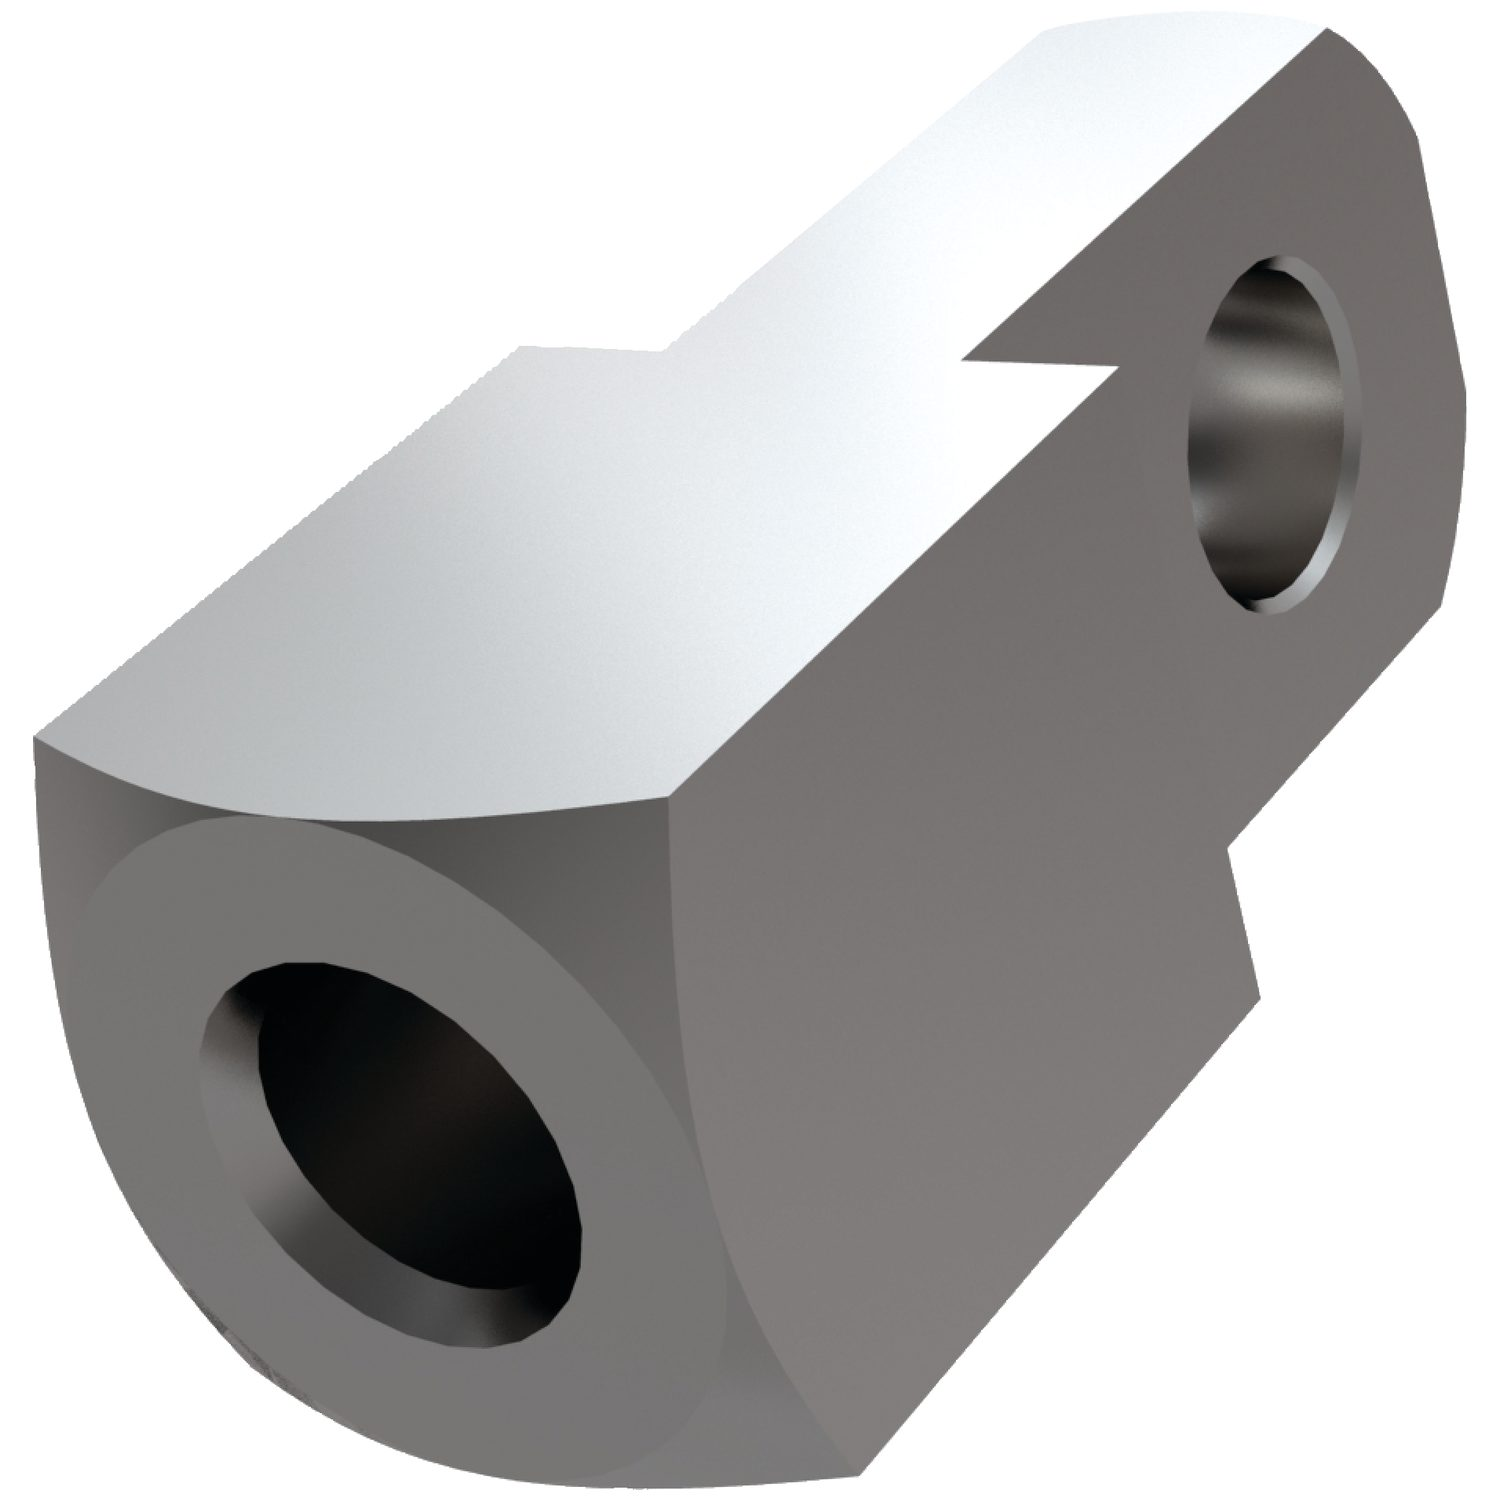 R3426 - Stainless Mating Piece for Clevis Joints